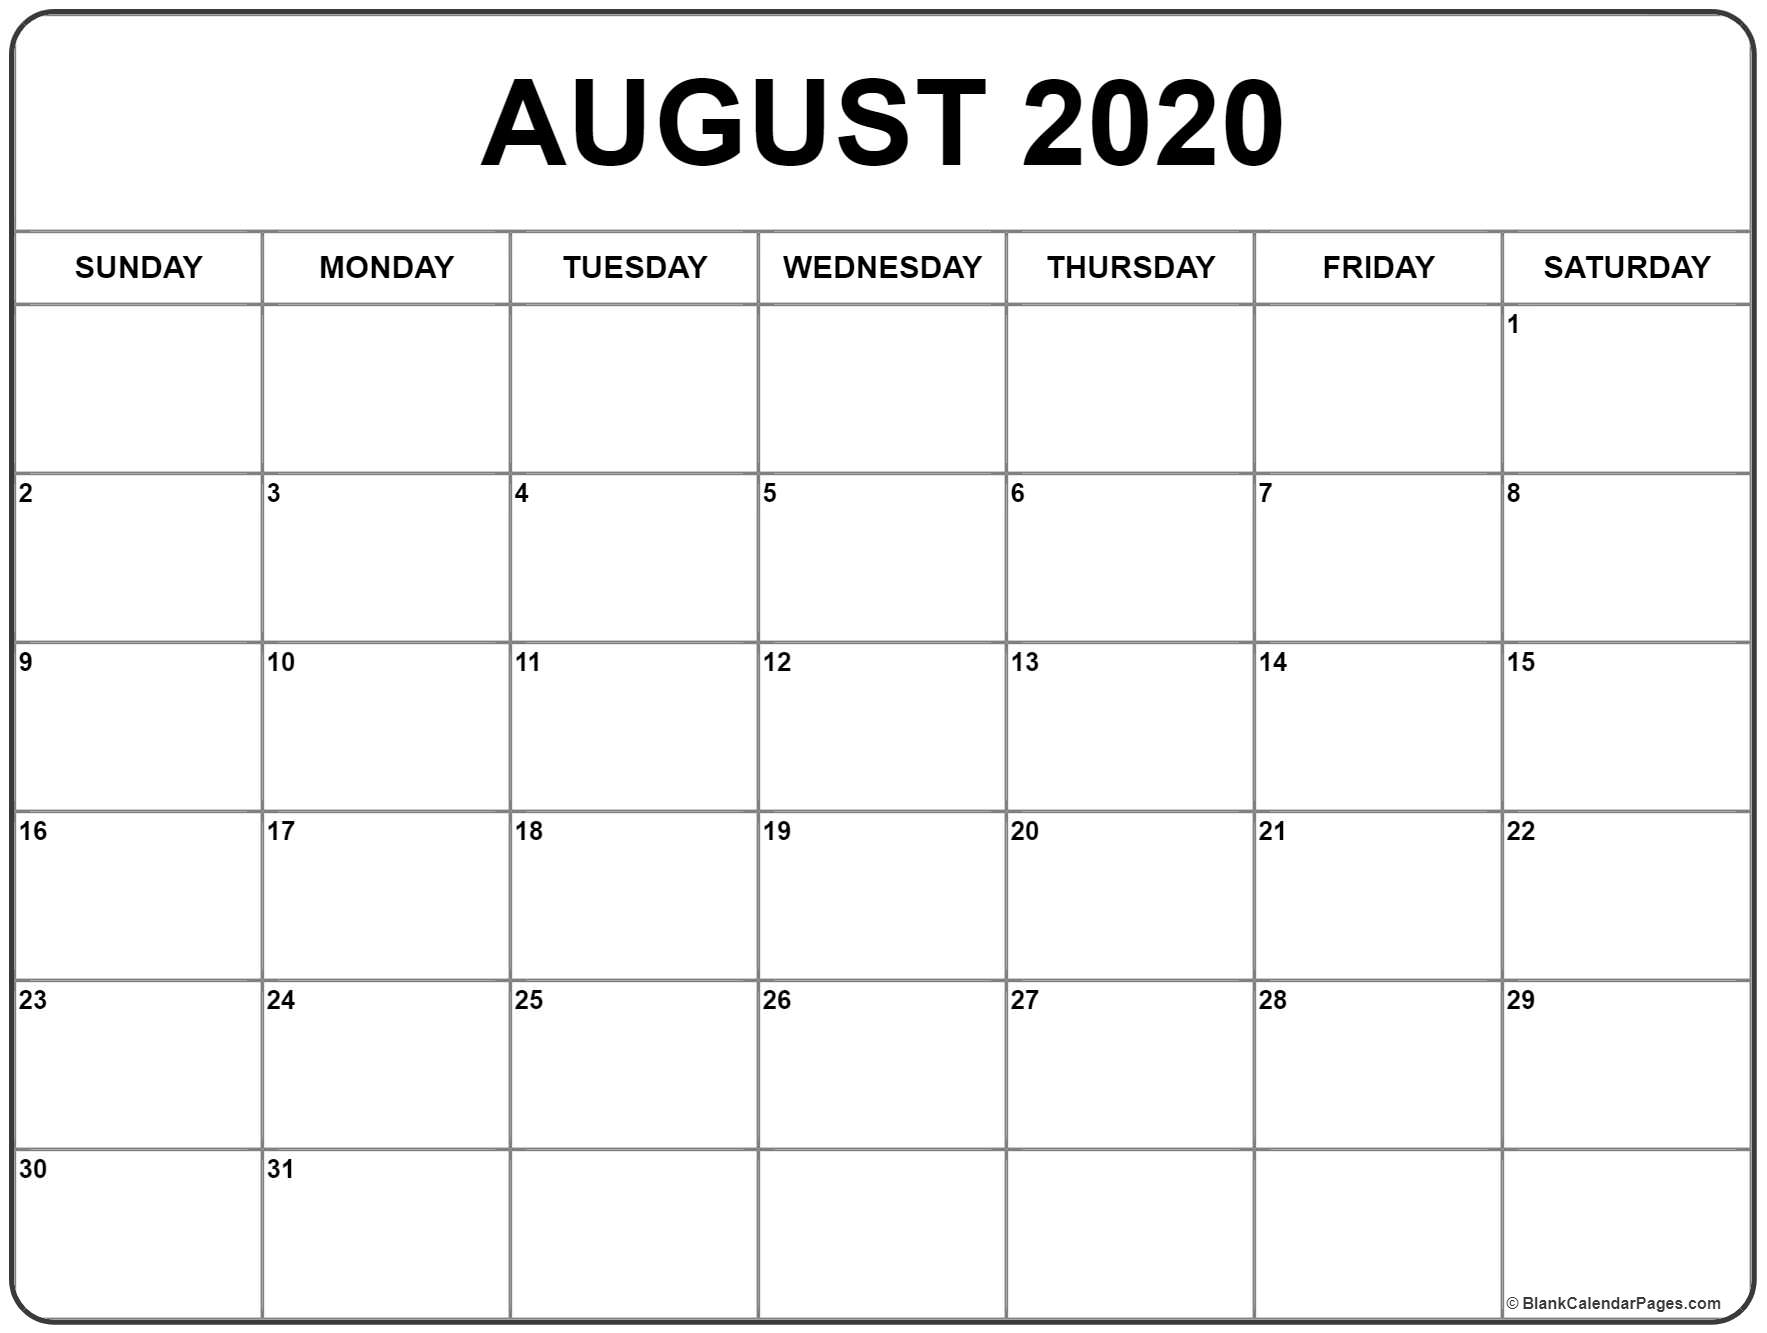 August 2020 Calendar | Free Printable Monthly Calendars with August Blank Calendar Pages